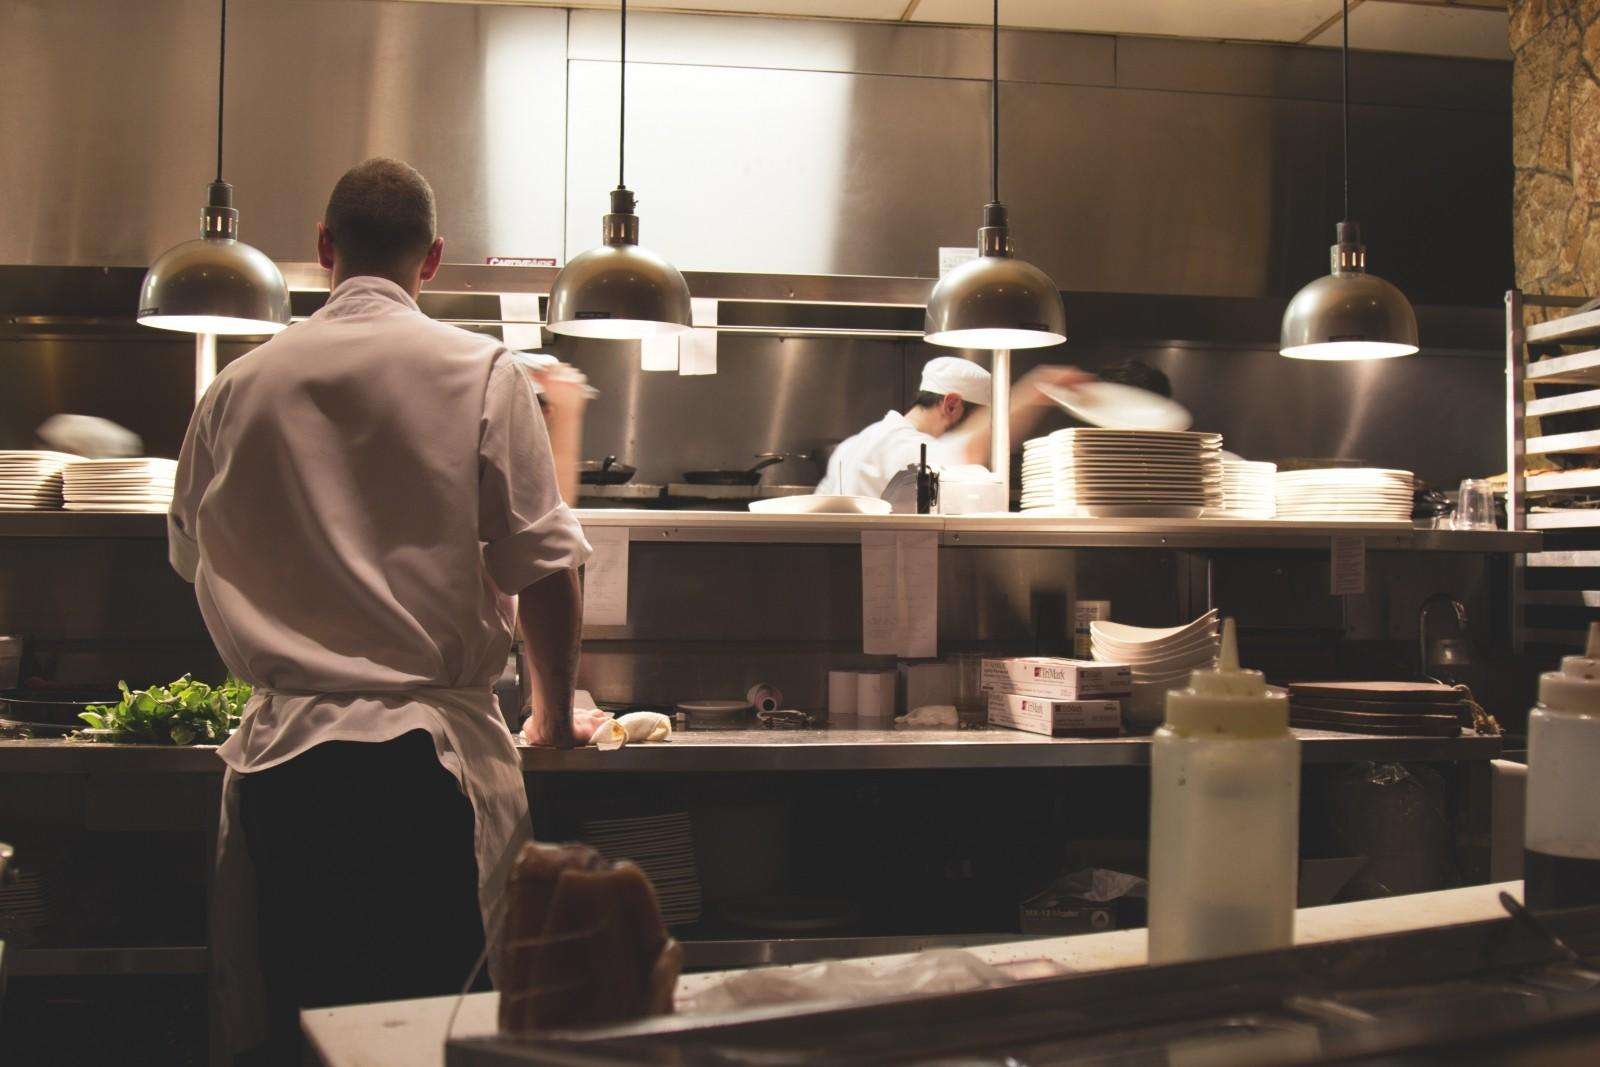 man in restaurants kitchen